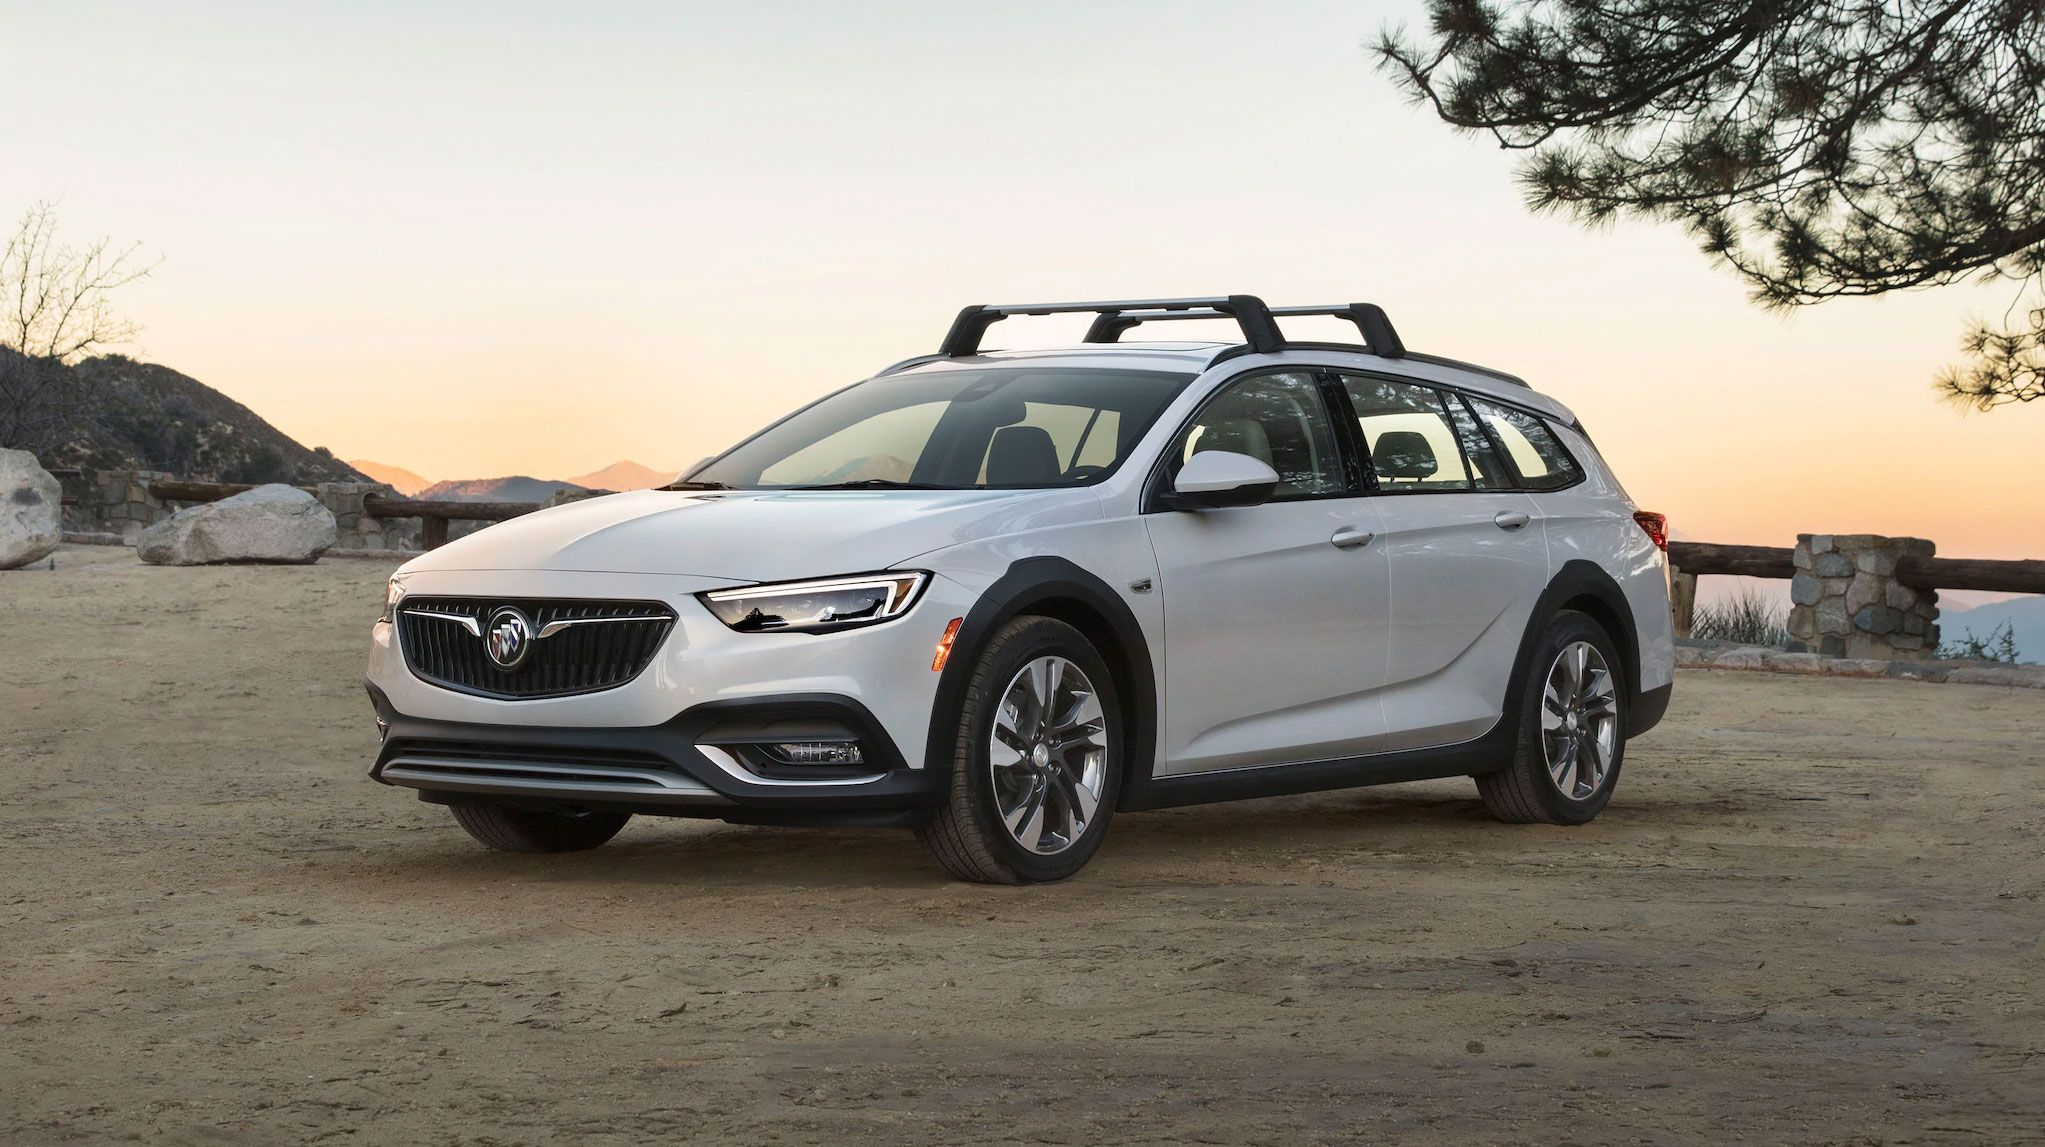 2020 Buick Regal Tourx Review, Pricing, And Specs New 2021 Buick Regal Tourx Review, Specs, 0-60